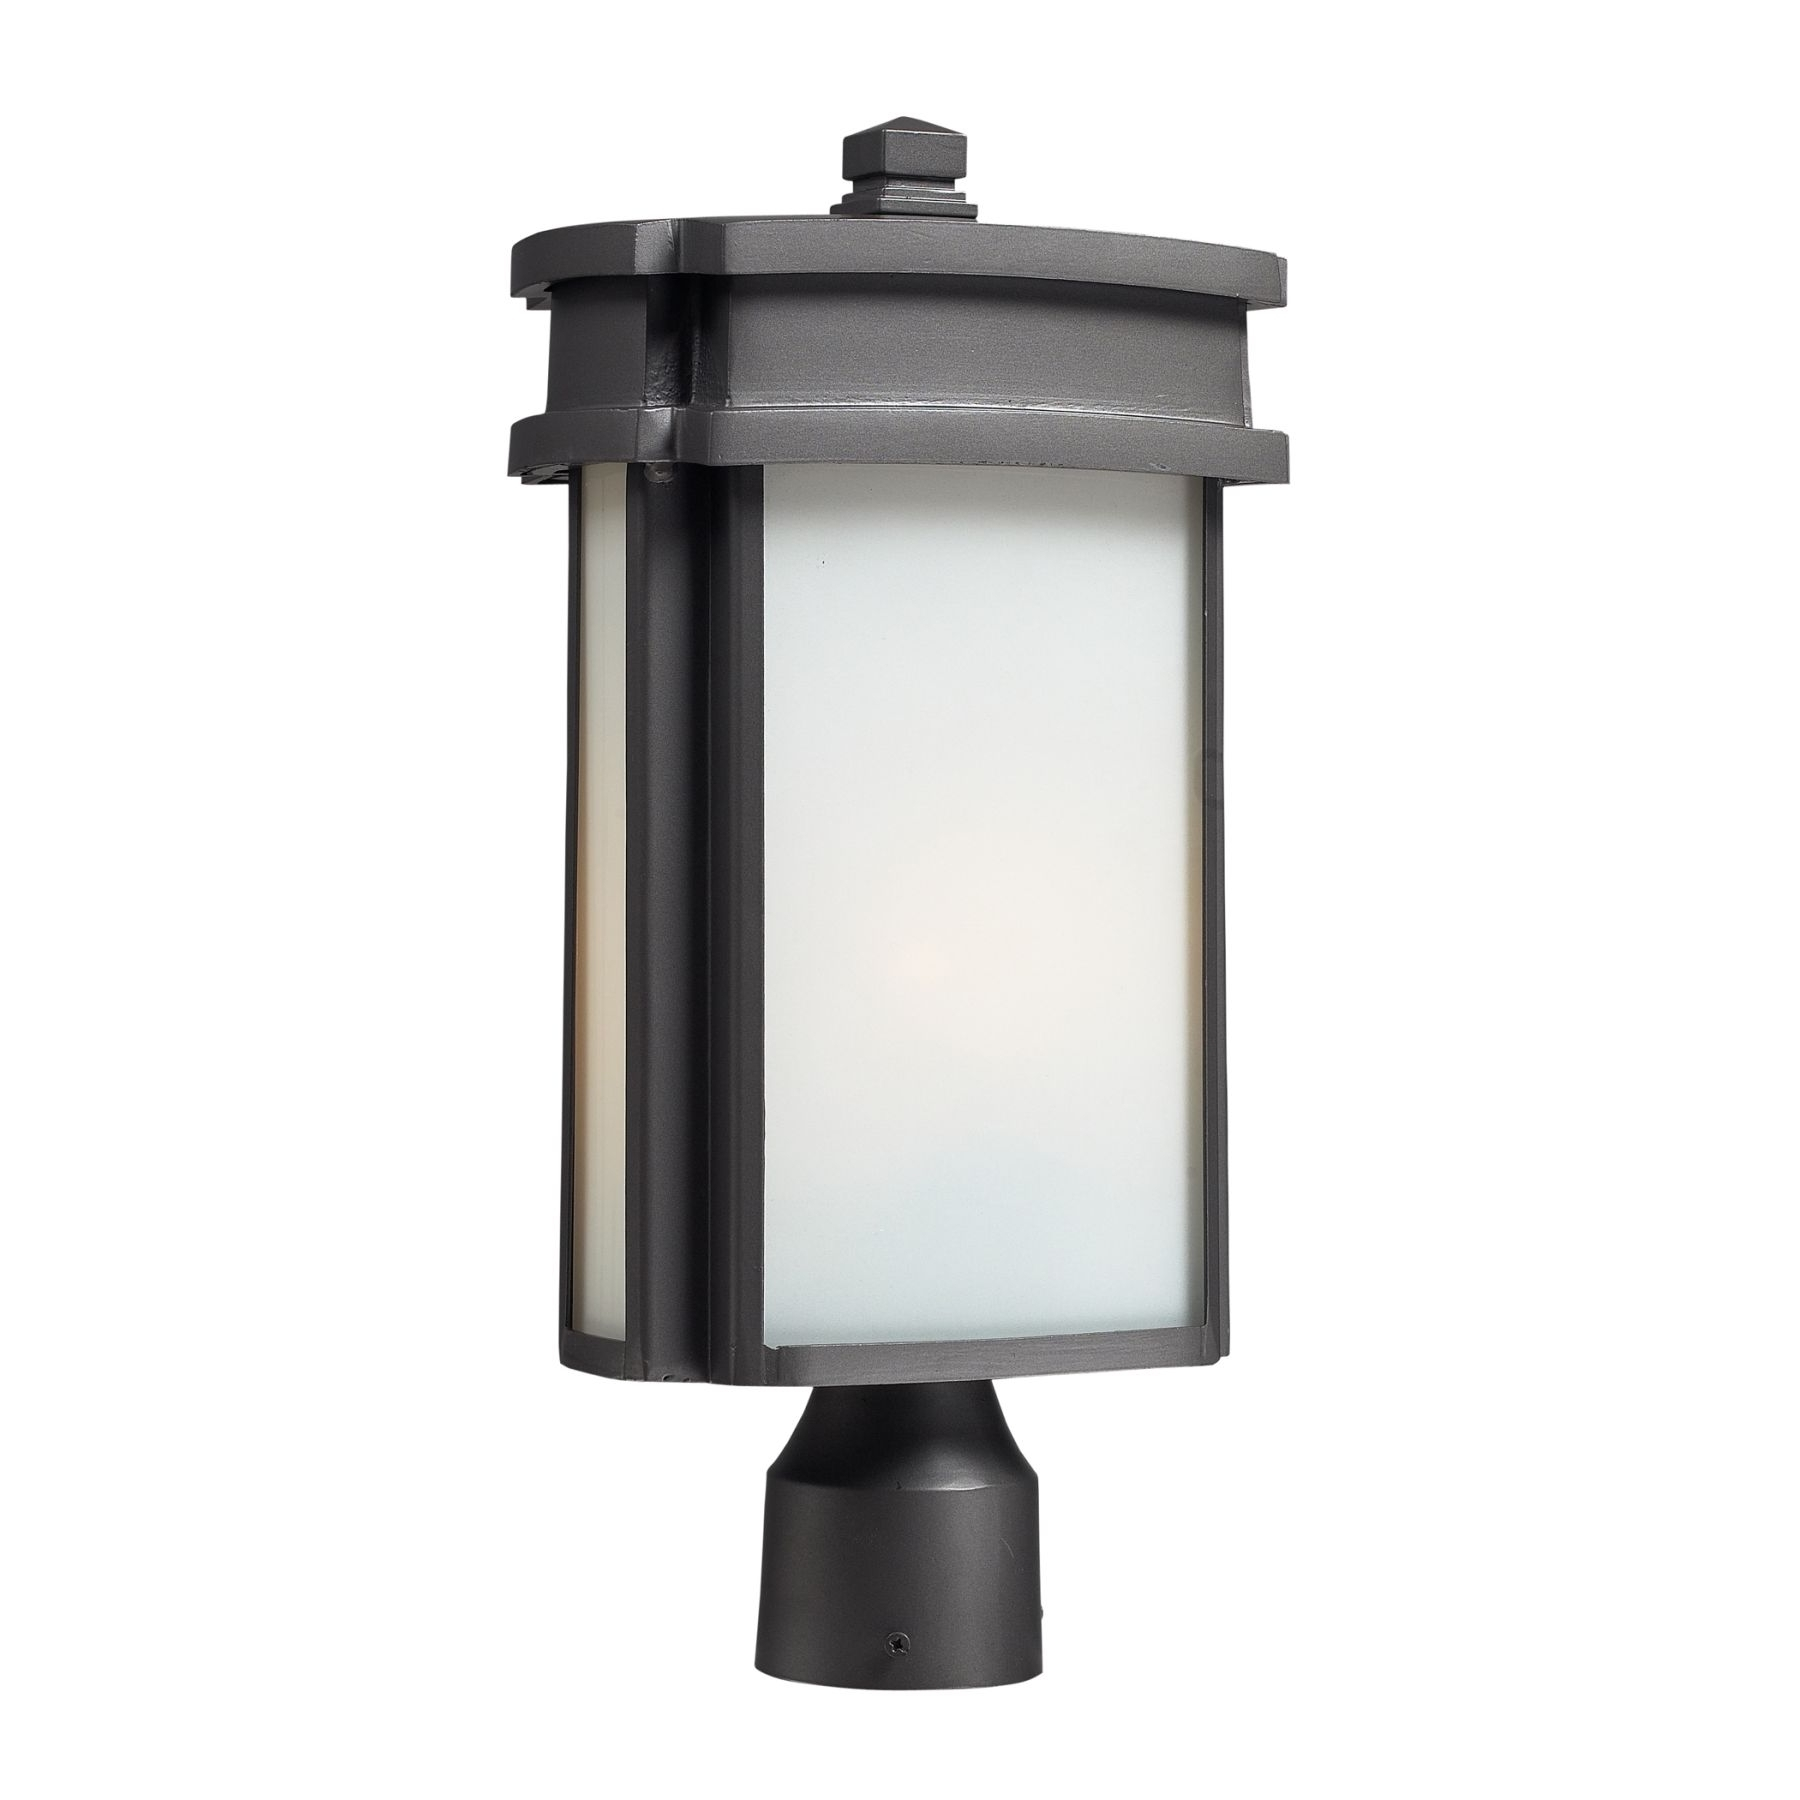 Contemporary Outdoor Post Lighting Pertaining To Favorite Contemporary Outdoor Post Lighting Fixtures • Outdoor Lighting (View 6 of 20)